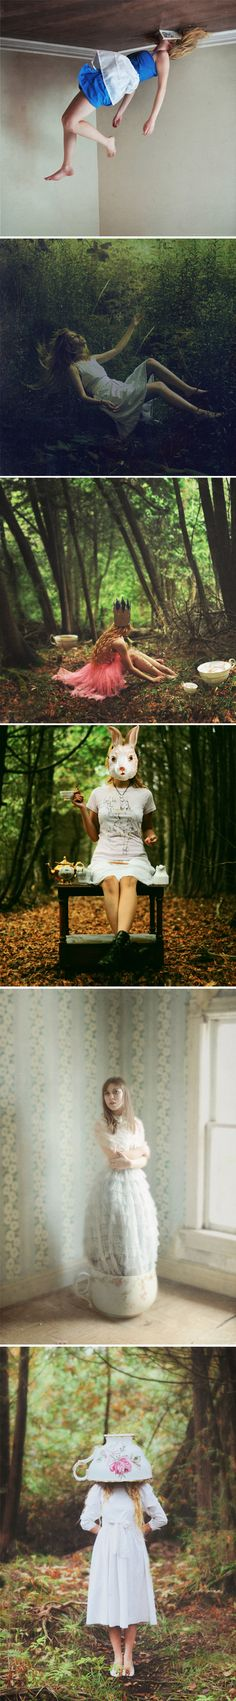 """alice in wonderland  lissy laricchia"""